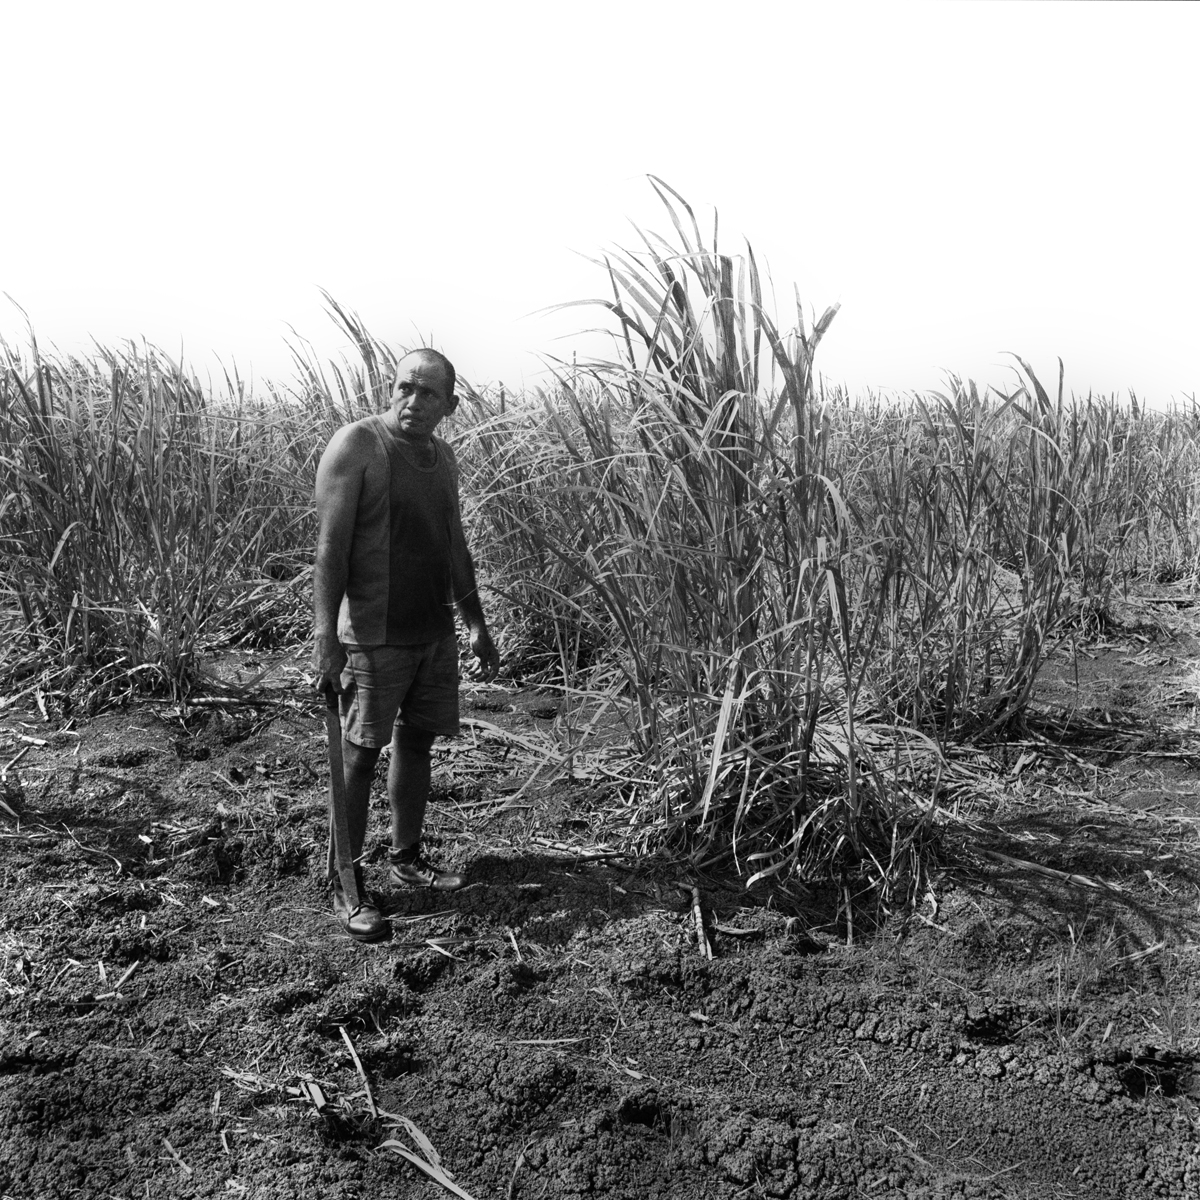 003-NS-Abrazme-Man-Cutting-Sugarcane